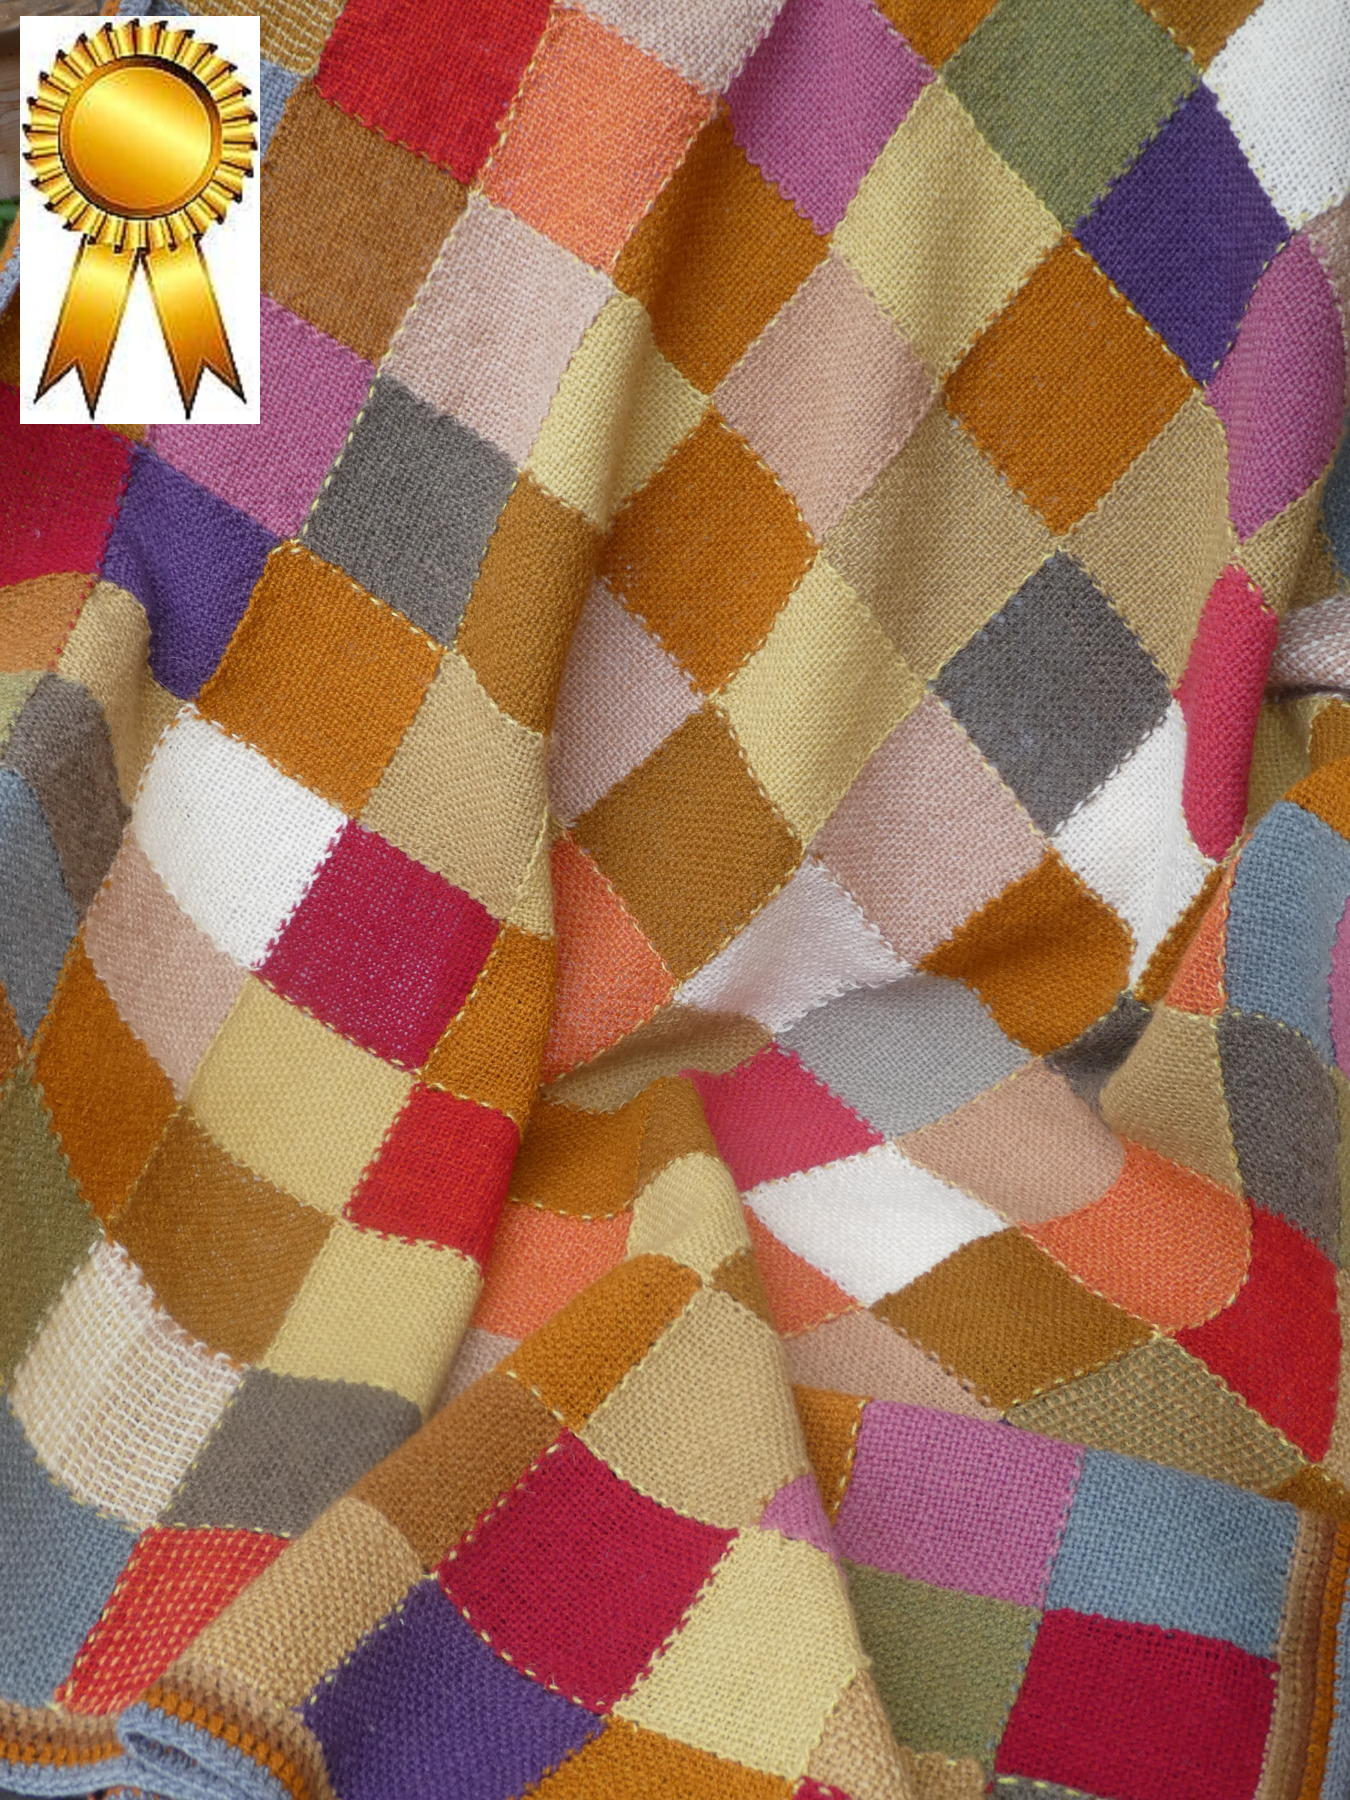 Jean B - Blanket of Many Colours